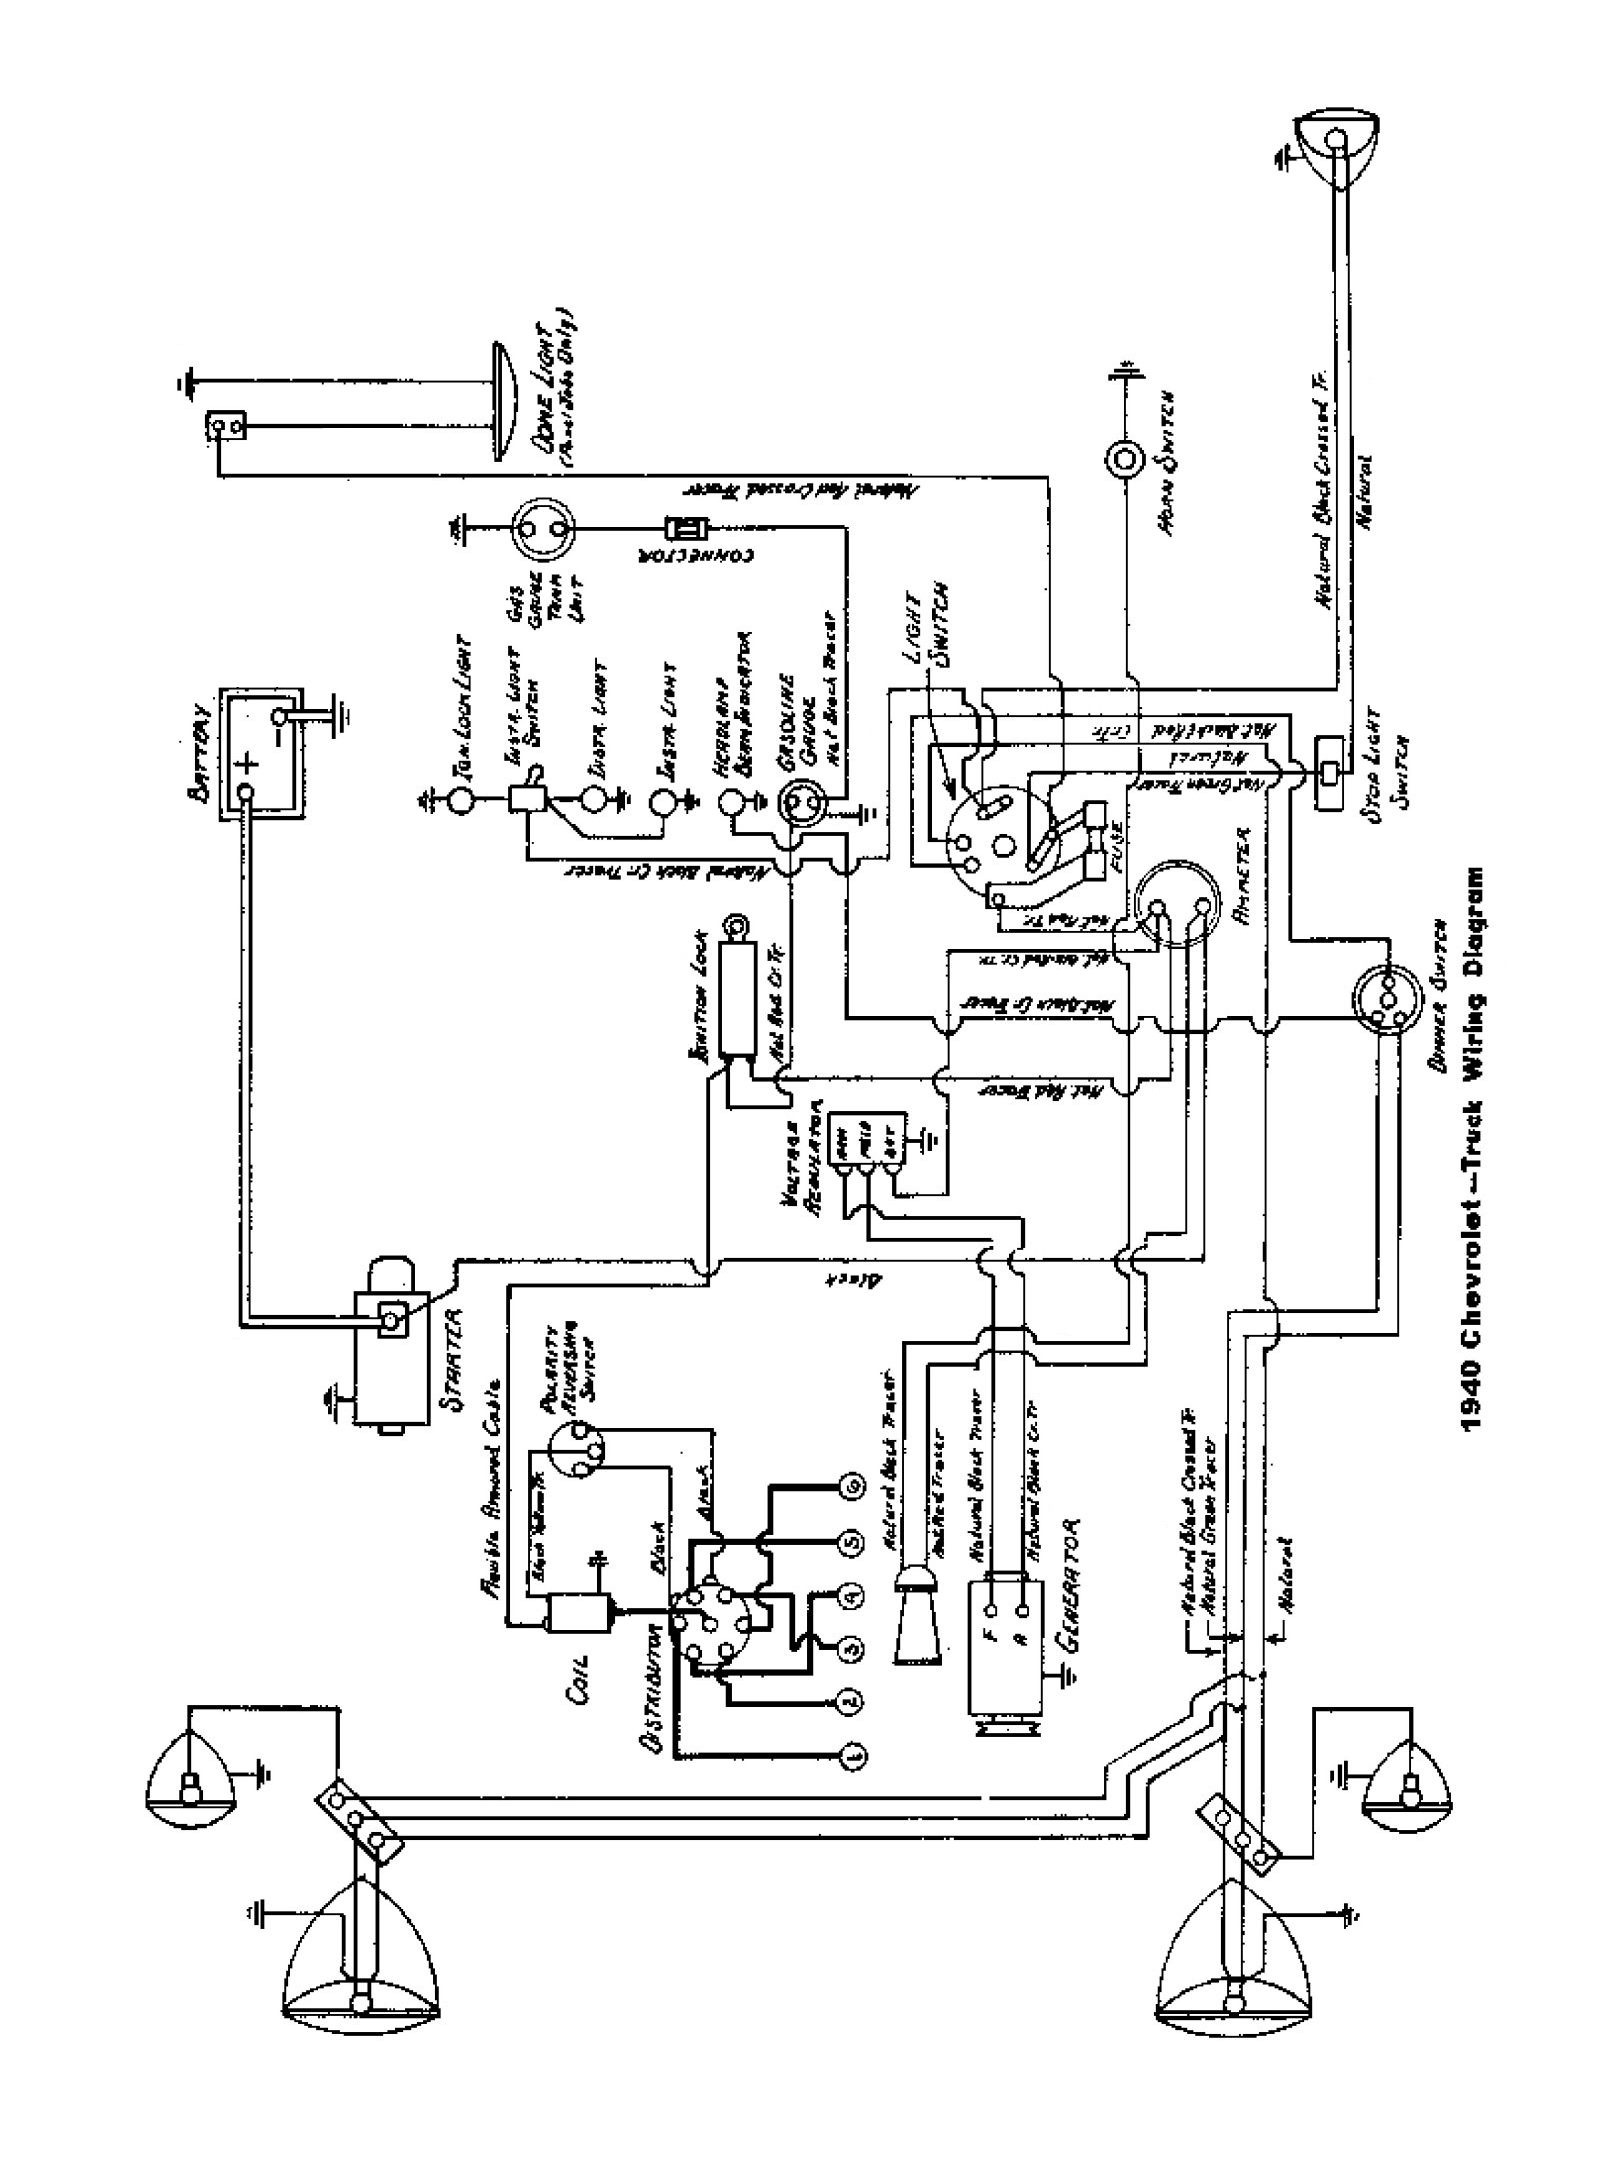 57 Chevy Headlight Switch Wiring Diagram - Wiring Diagram G9 on 55 chevy headlight switch diagram, headlight switch parts, headlight adjustment diagram, cruise control diagram, headlight switch screw, headlight switch operation, headlight bulb diagram, 3 pole switch diagram, 2005 jeep wrangler headlight diagram, universal ignition switch diagram, headlight parts diagram, headlight wire diagram, headlight dimmer switch diagram, headlight switch ford,